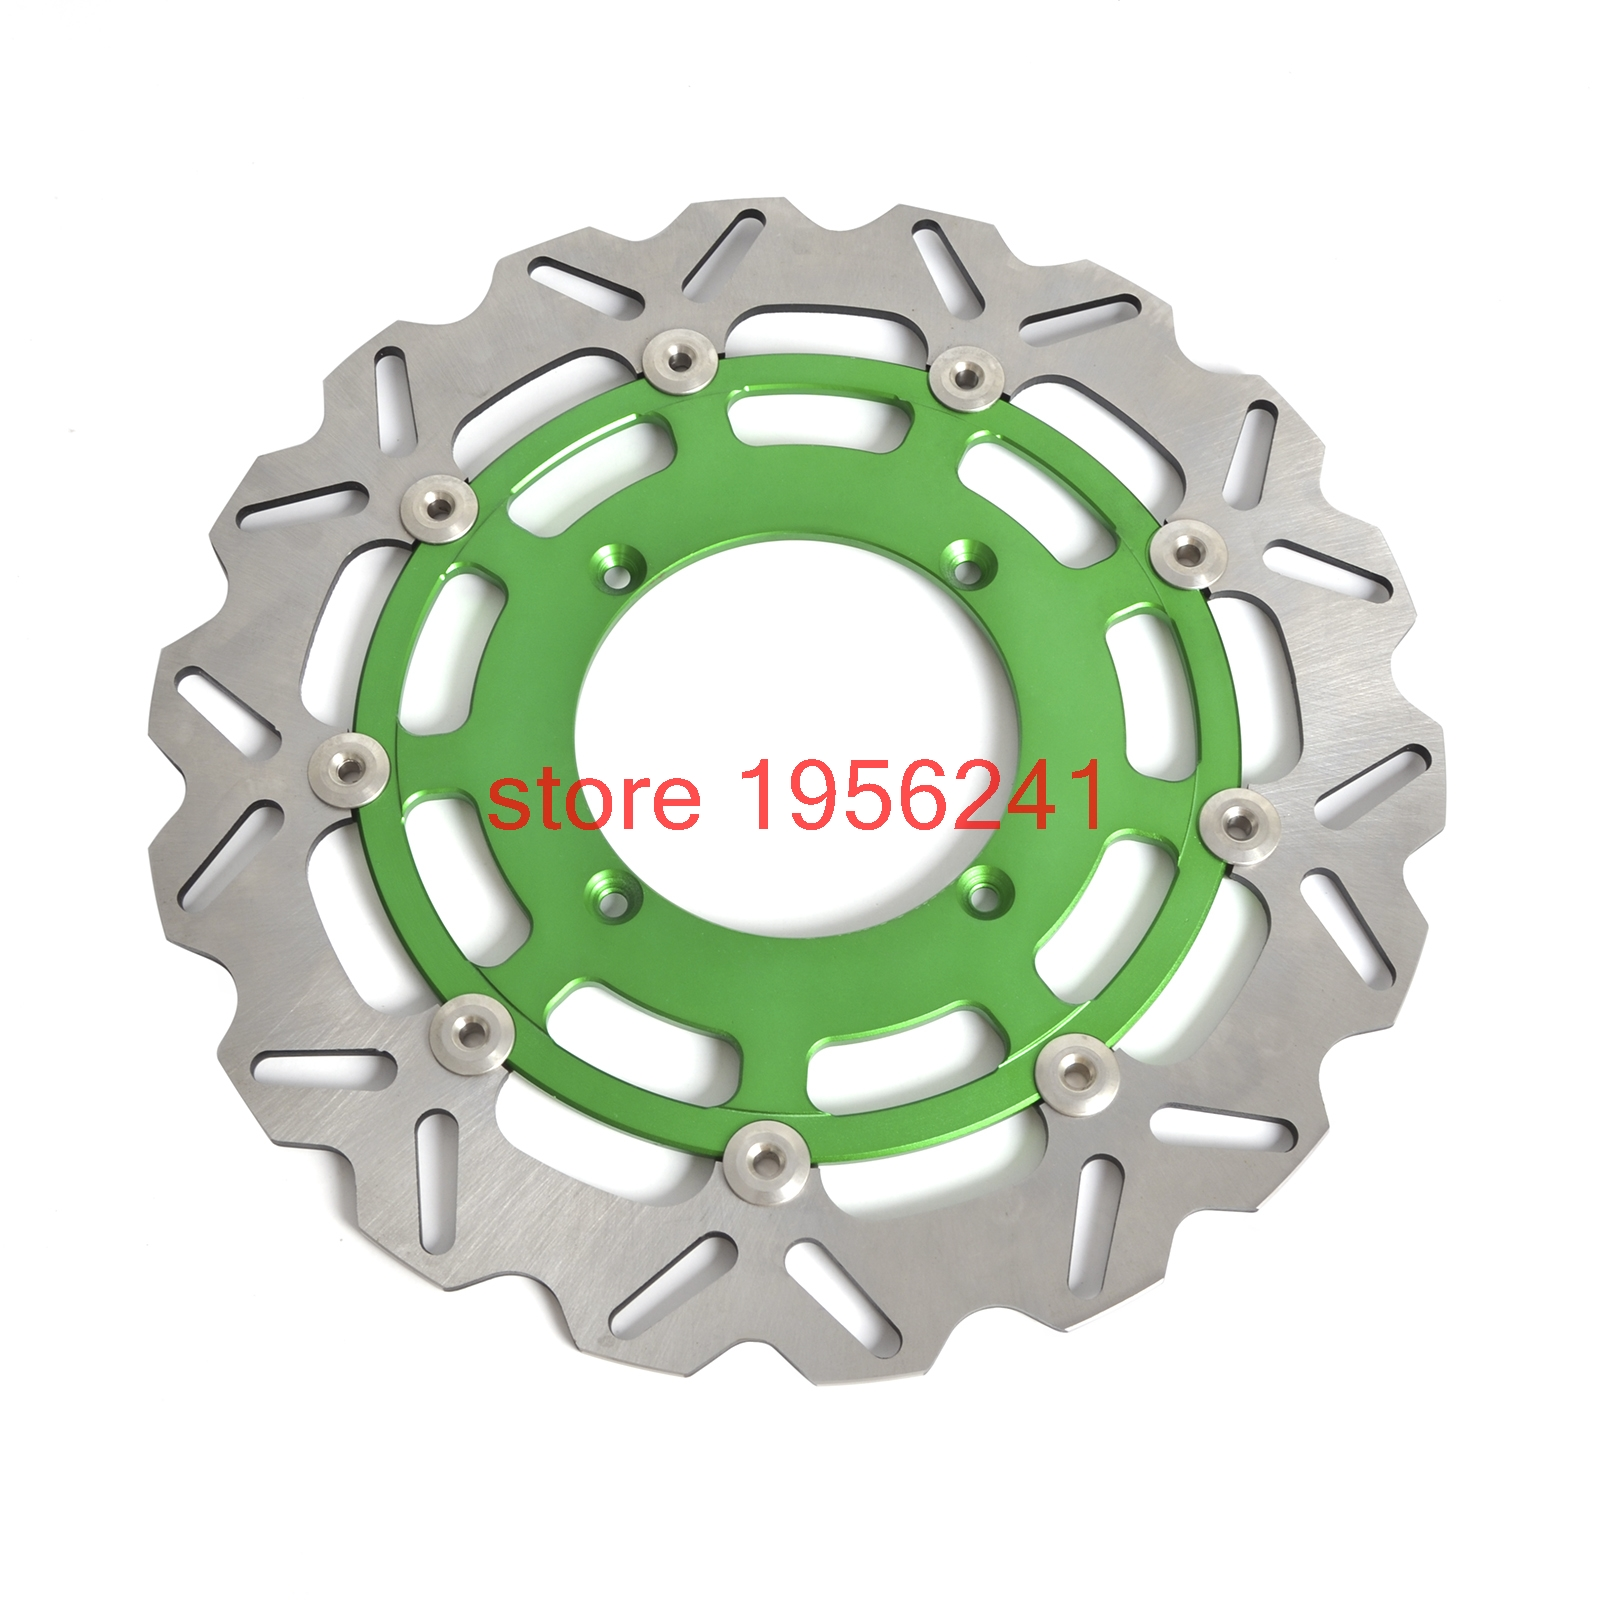 320mm Supermoto Racing Floating Front Brake Disc Disk Rotor For Kawasaki KX125 KX250 KX250F KX450F KLX450R keoghs motorcycle brake disc brake rotor floating 260mm 82mm diameter cnc for yamaha scooter bws cygnus front disc replace